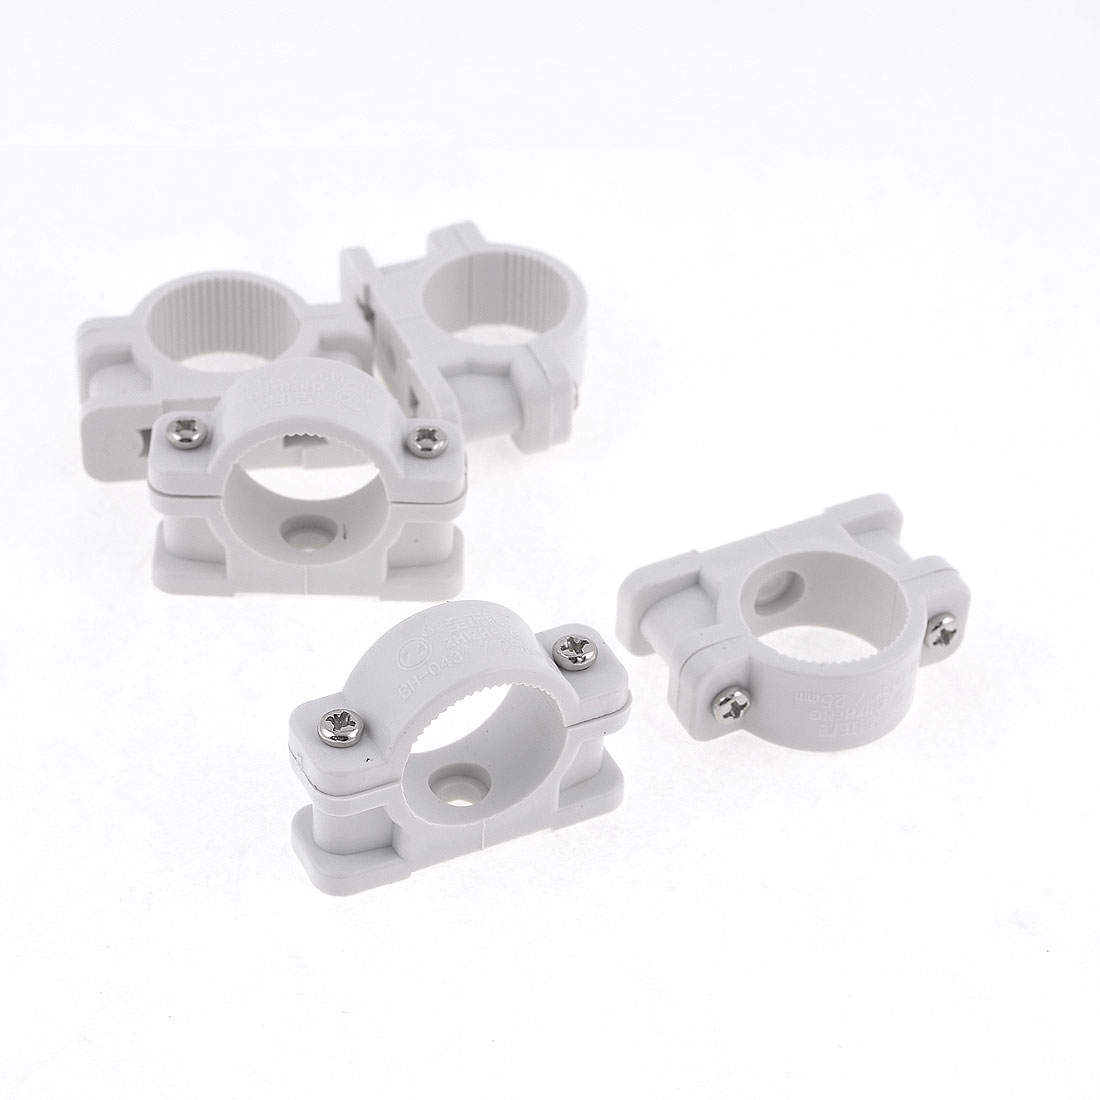 25mm Diameter Plastic Tube Pipe Clamps Clips Connectors White 5 Pcs